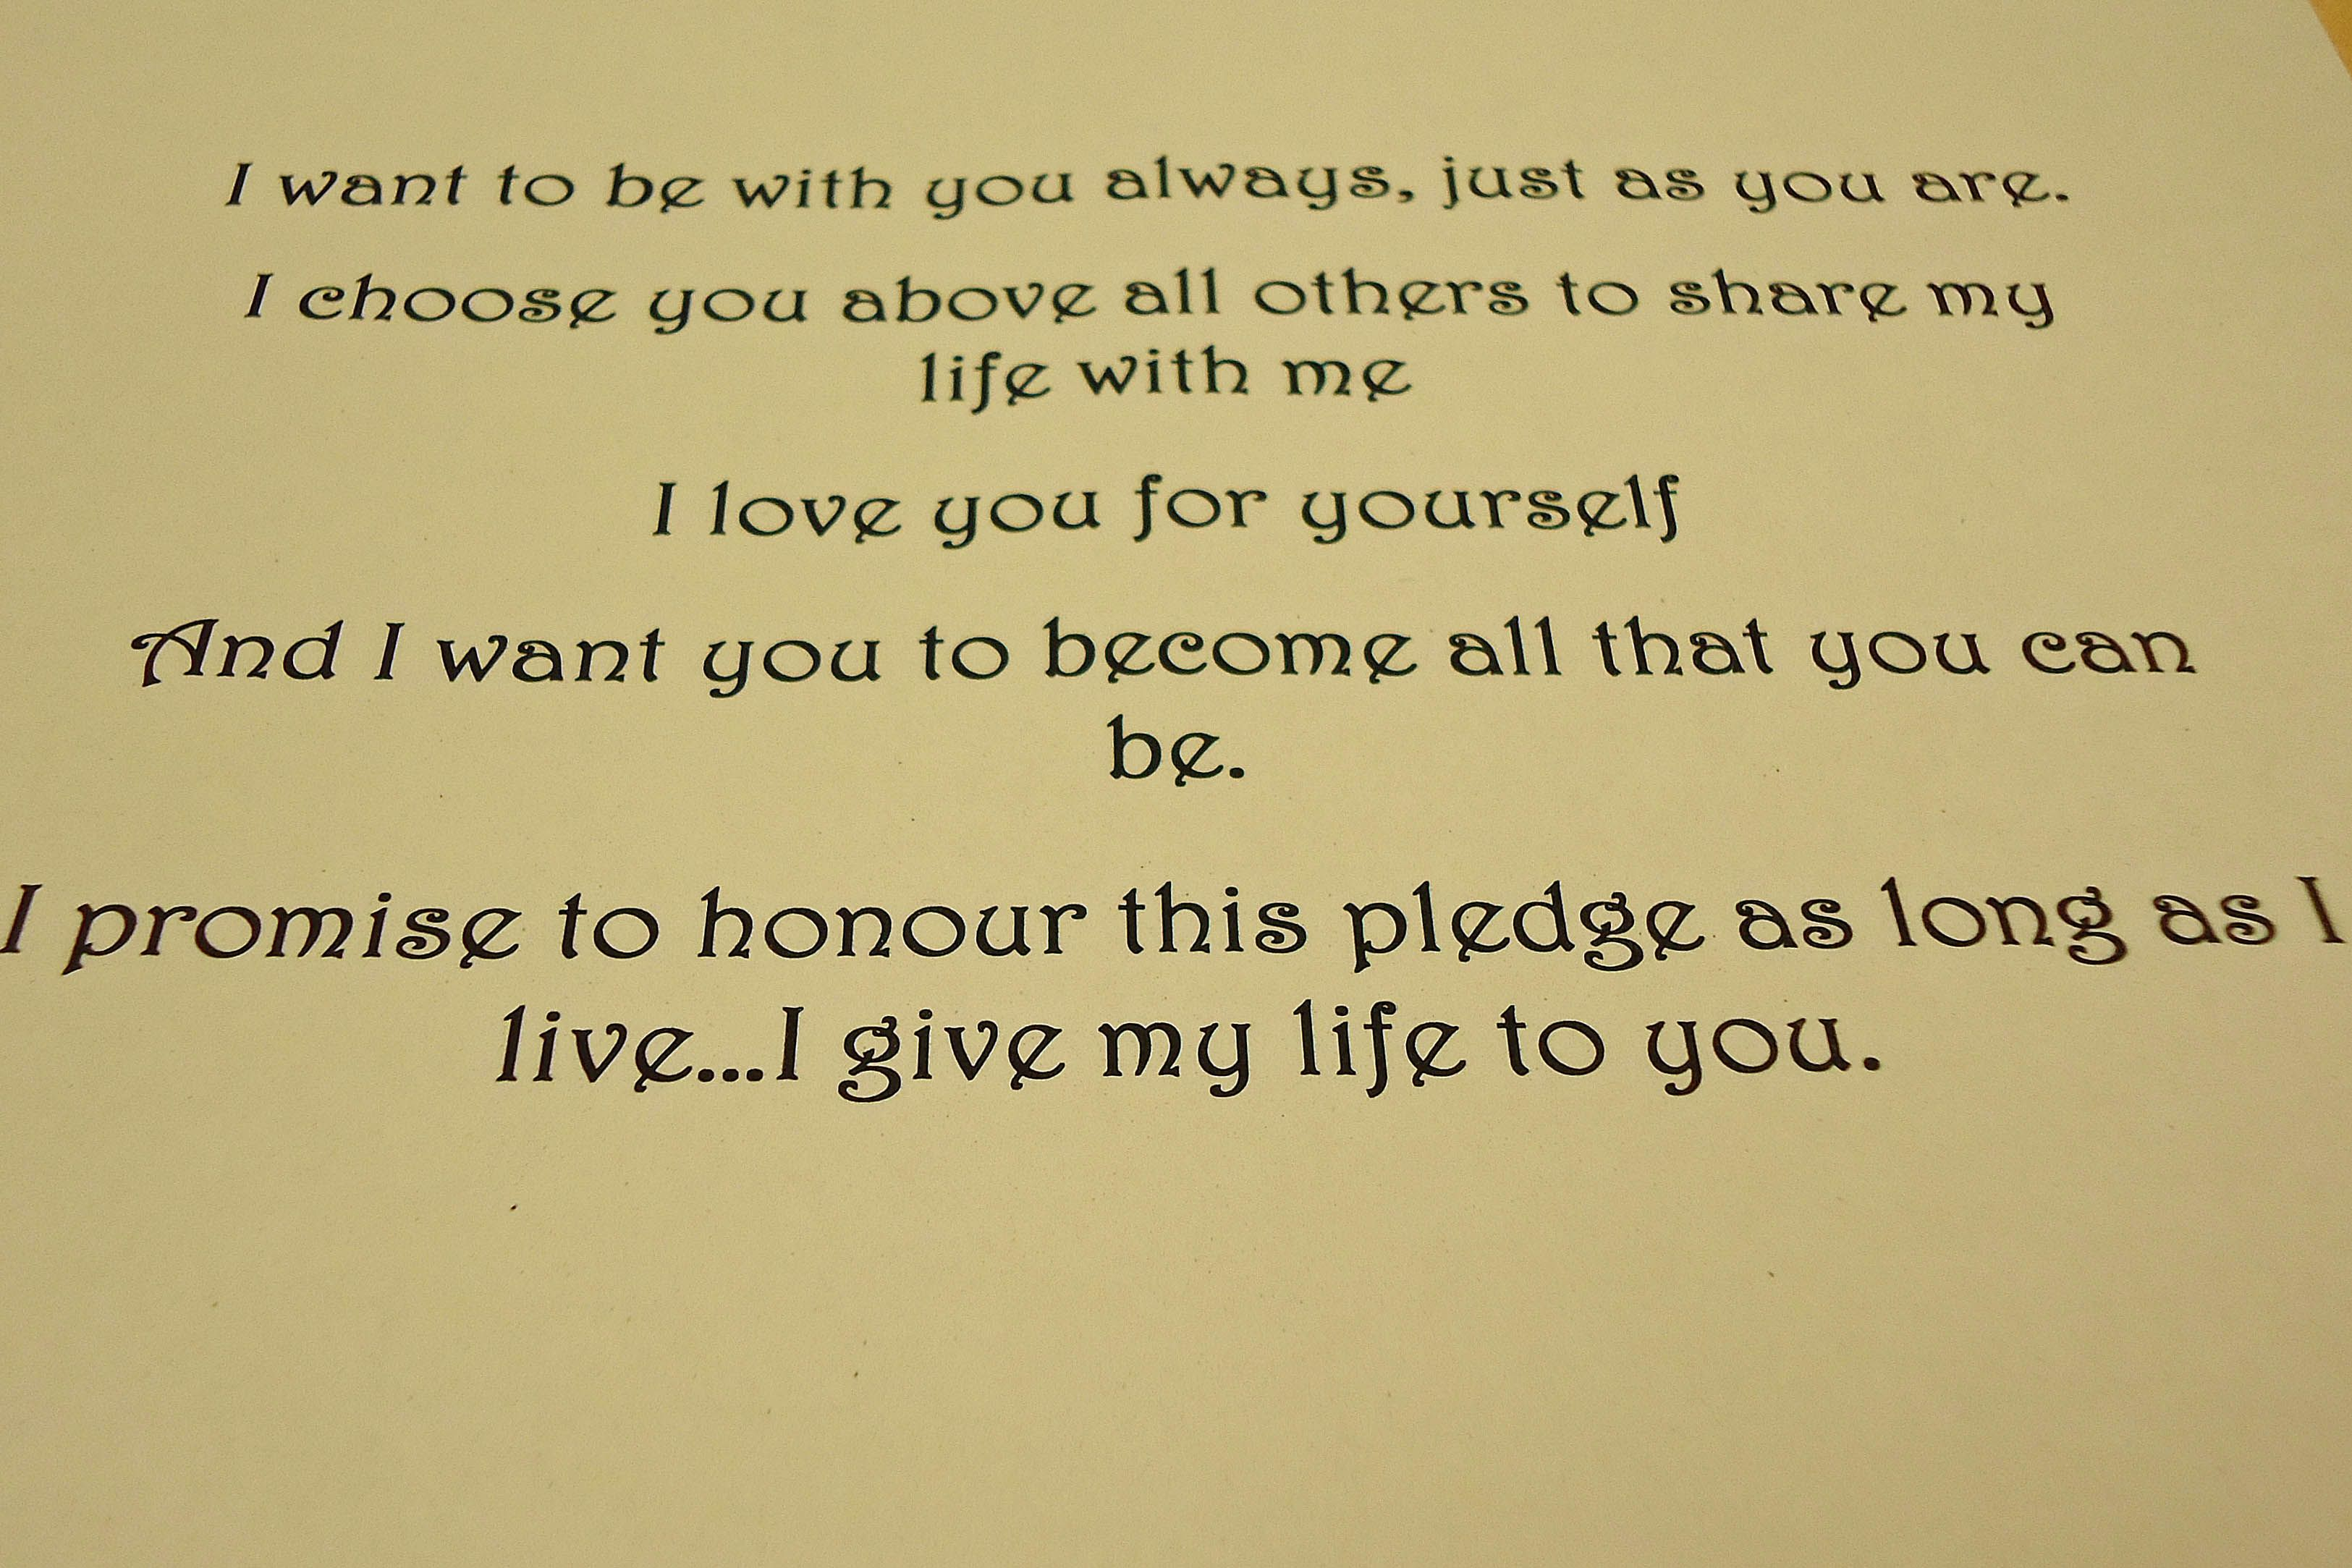 Day 2 Words Our Wedding Vows 3 Marriage Vows Vows Wedding Vows